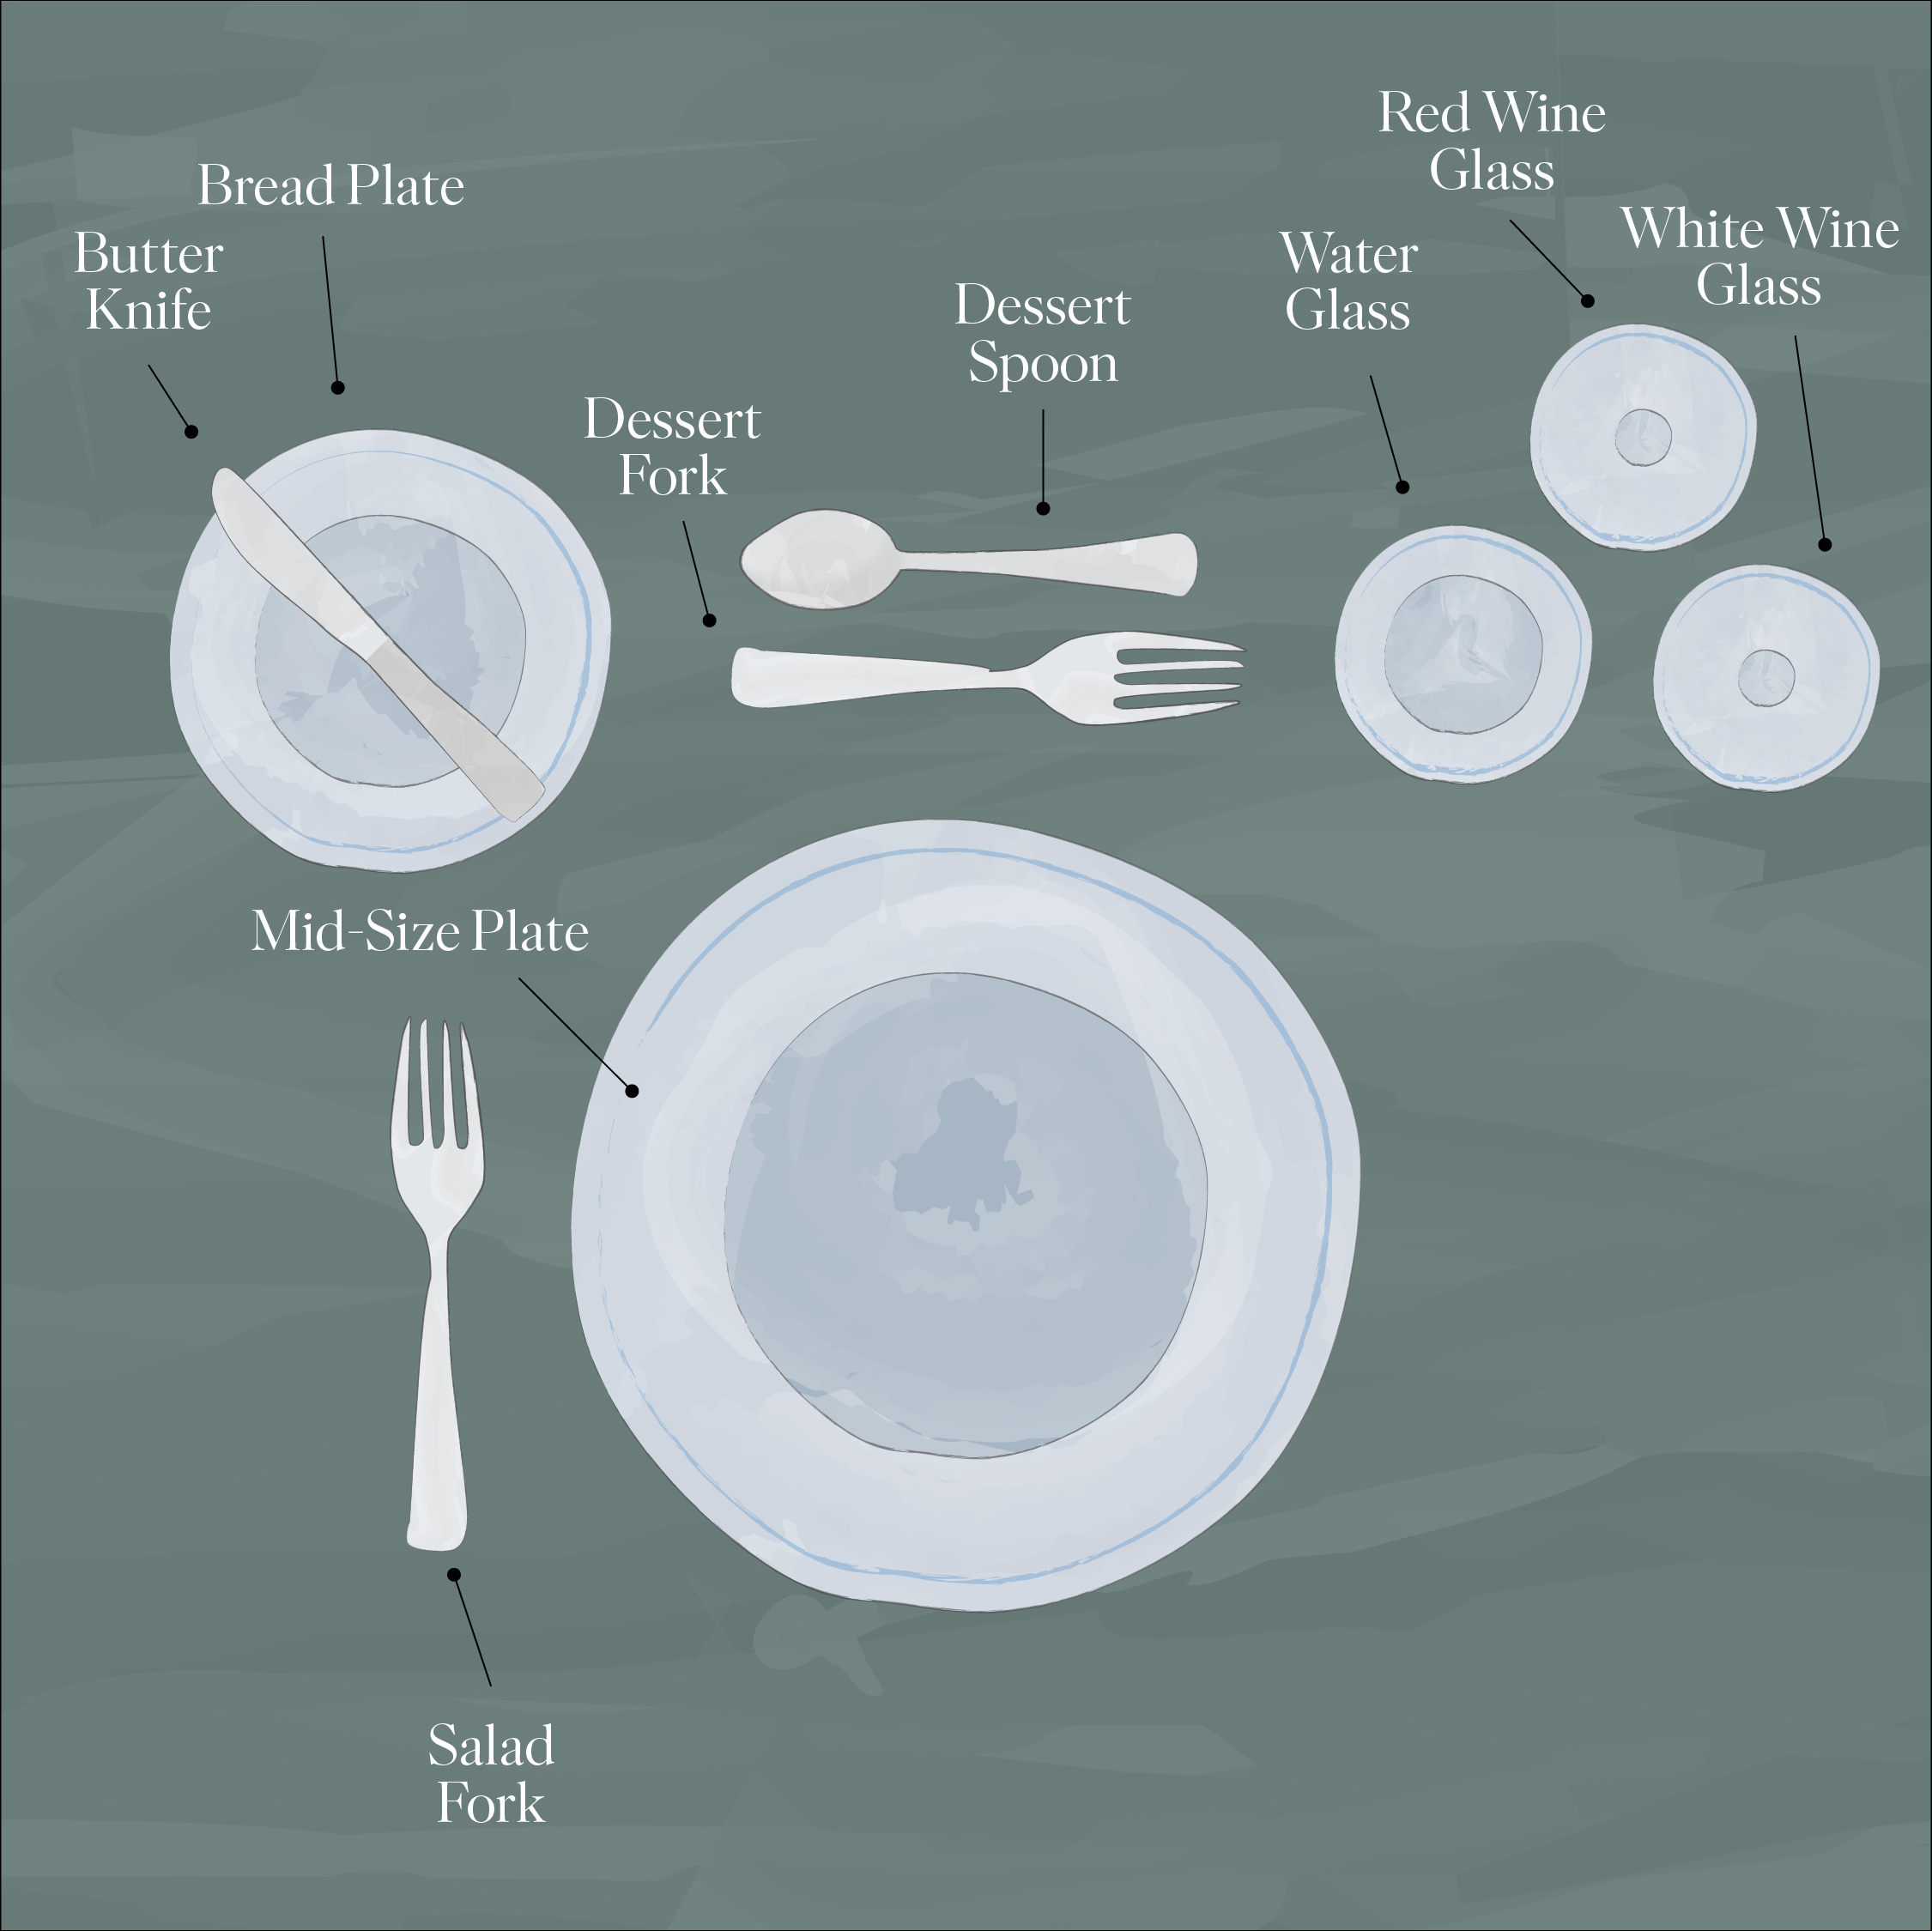 Illustration of Salad Fork Placement on Dining Table